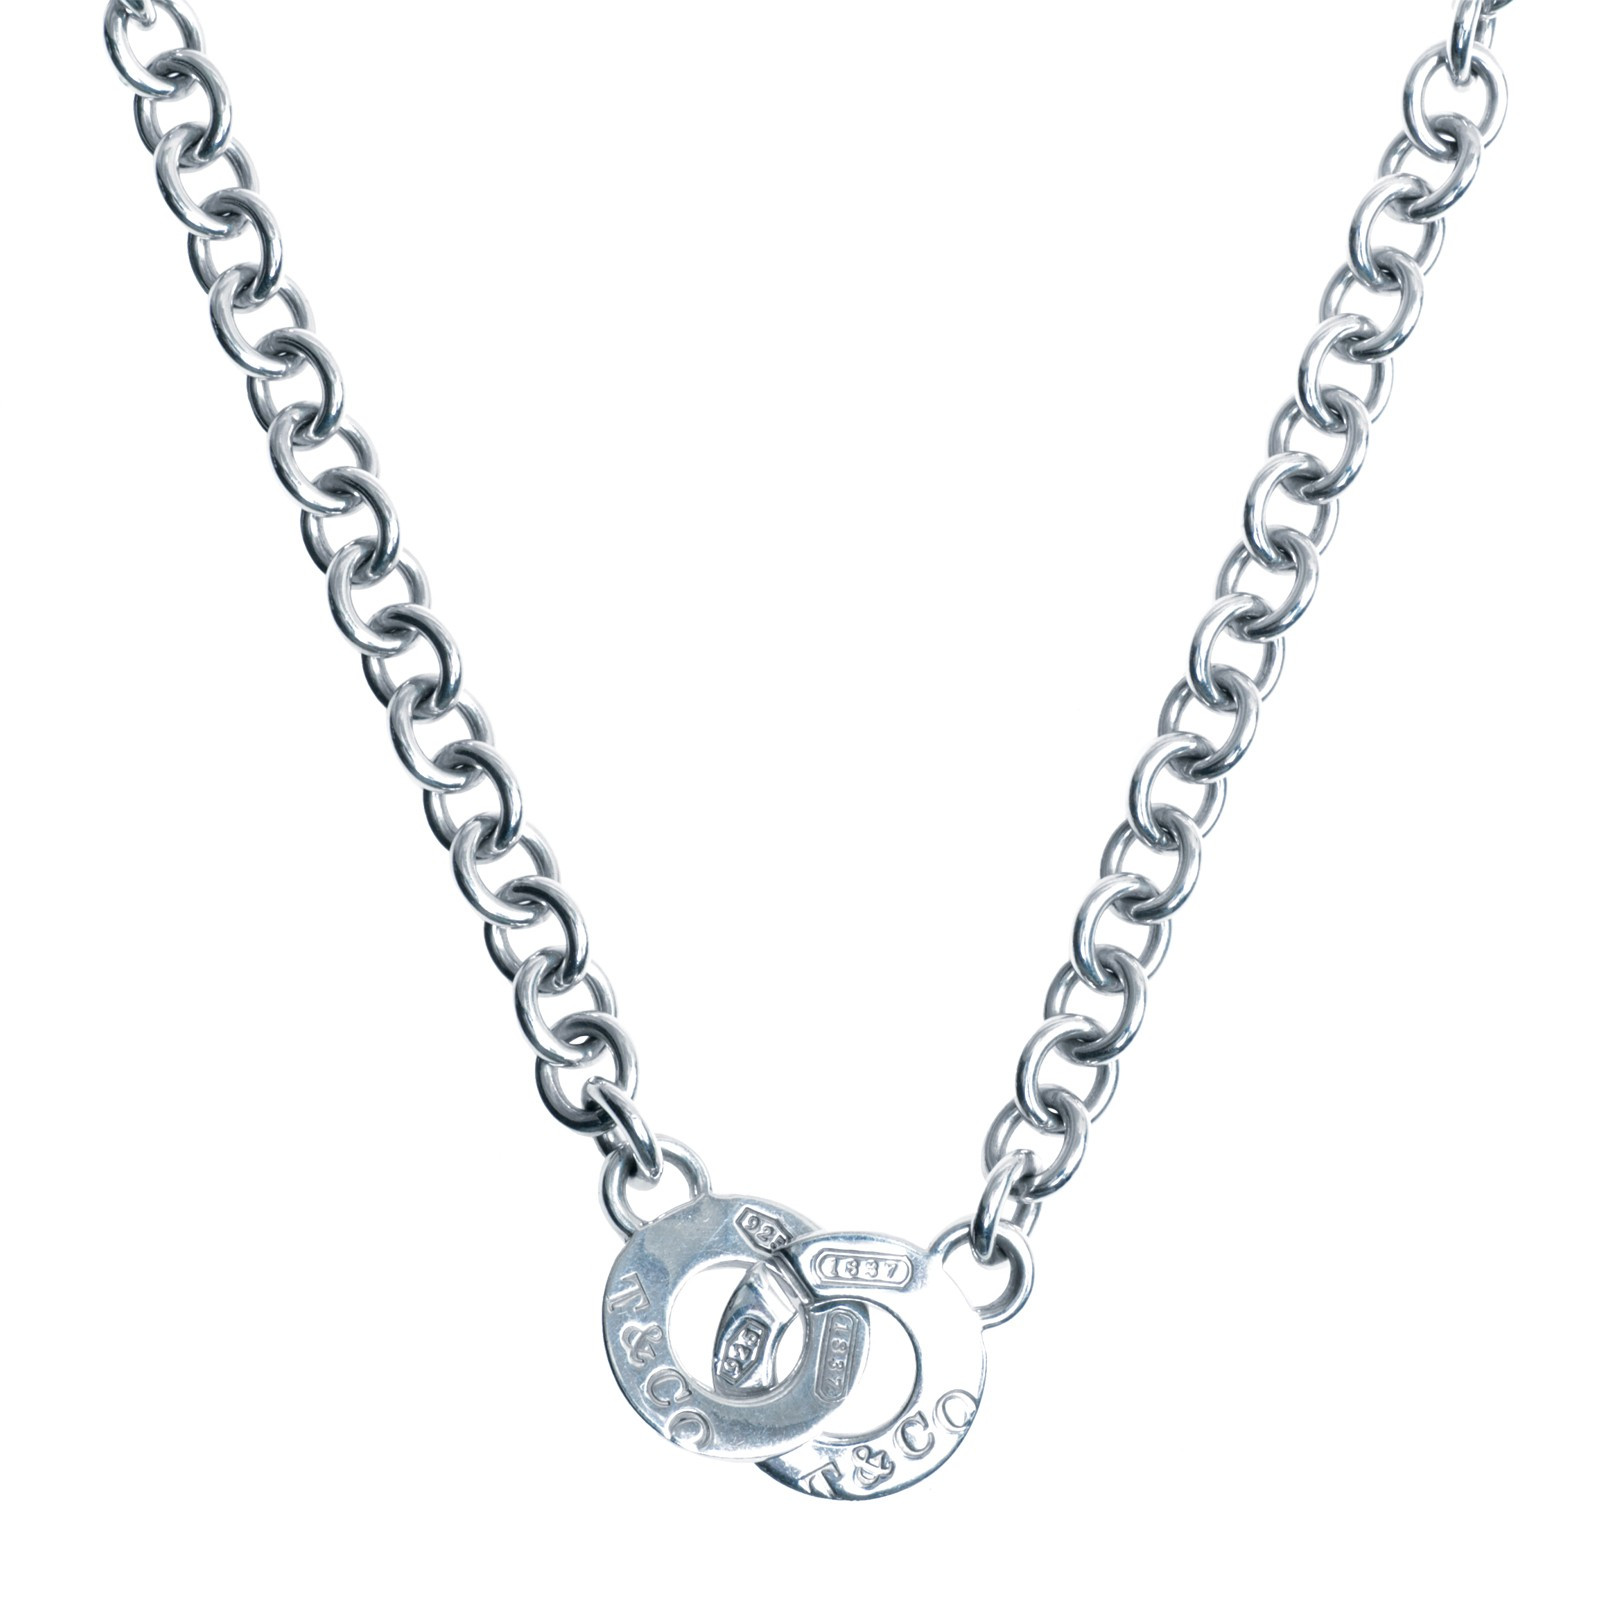 c4b939776 Indentifying header for breadcrumps-wrapper. Home; Vintage Tiffany & Co. 1837  Interlocking Circle Necklace